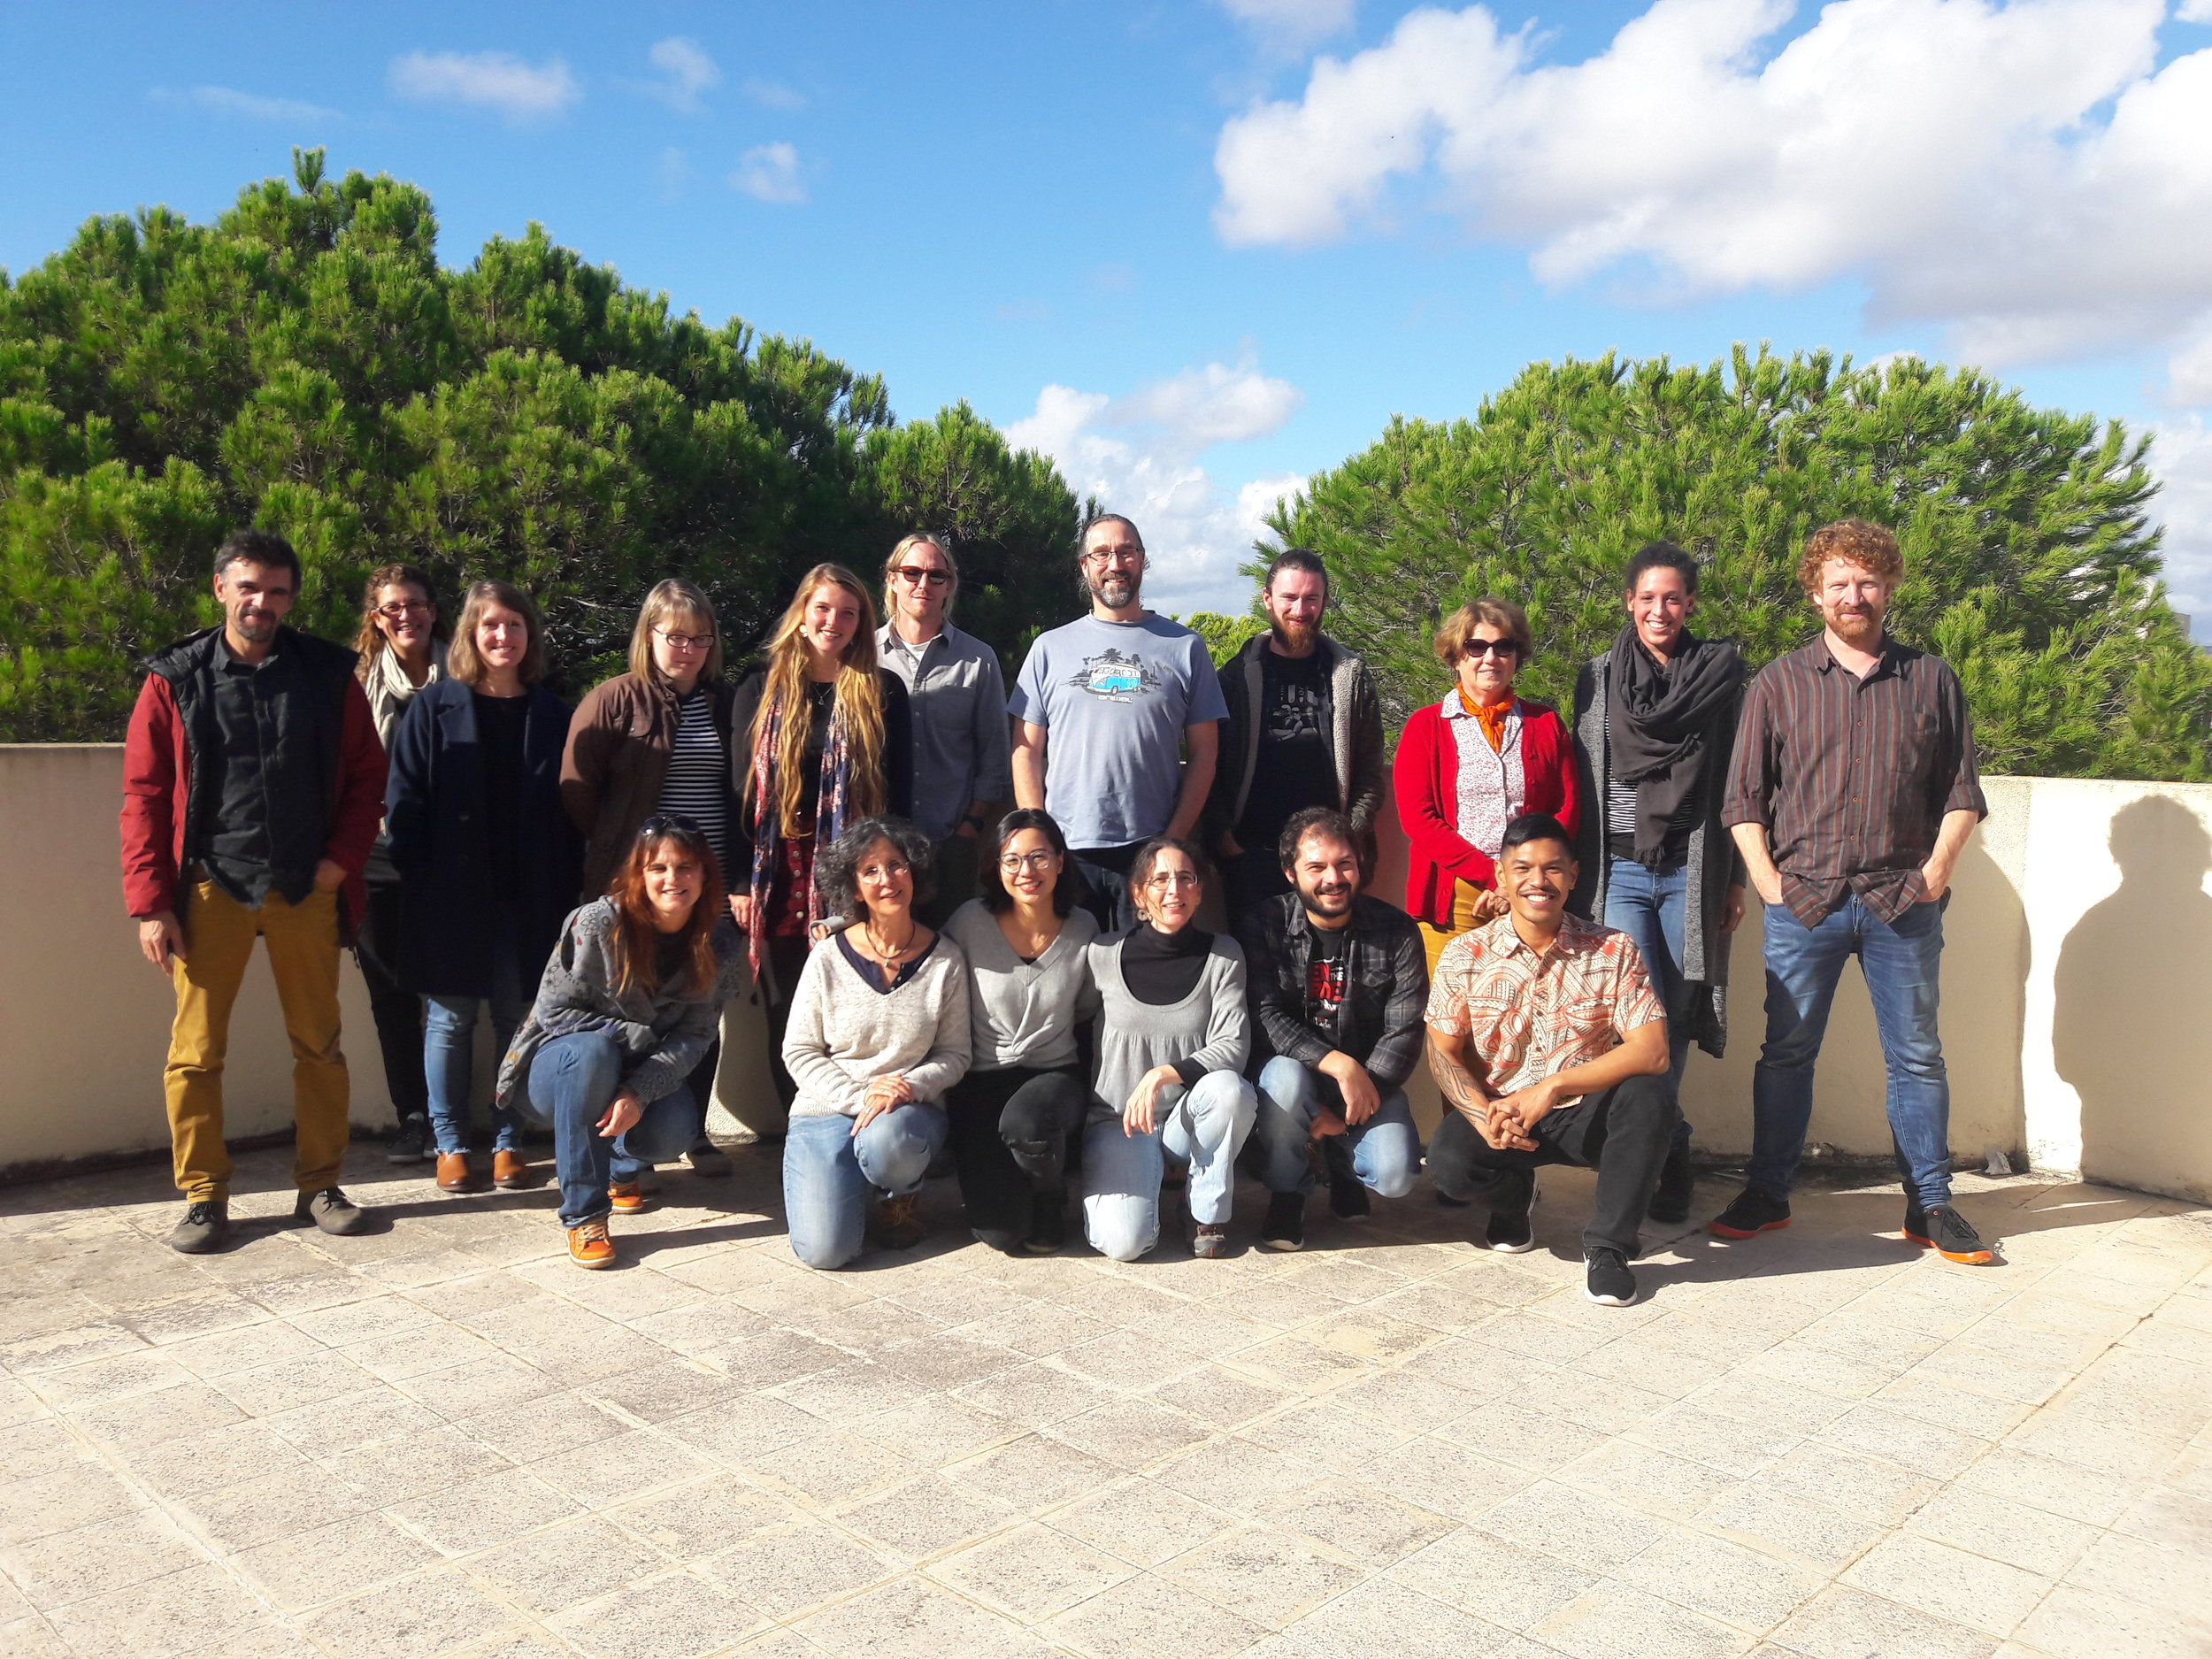 Postdoc Kelvin Gorospe and PI Austin Humphries doing the obligatory group photo at the Ecopath workshop in Portugal.